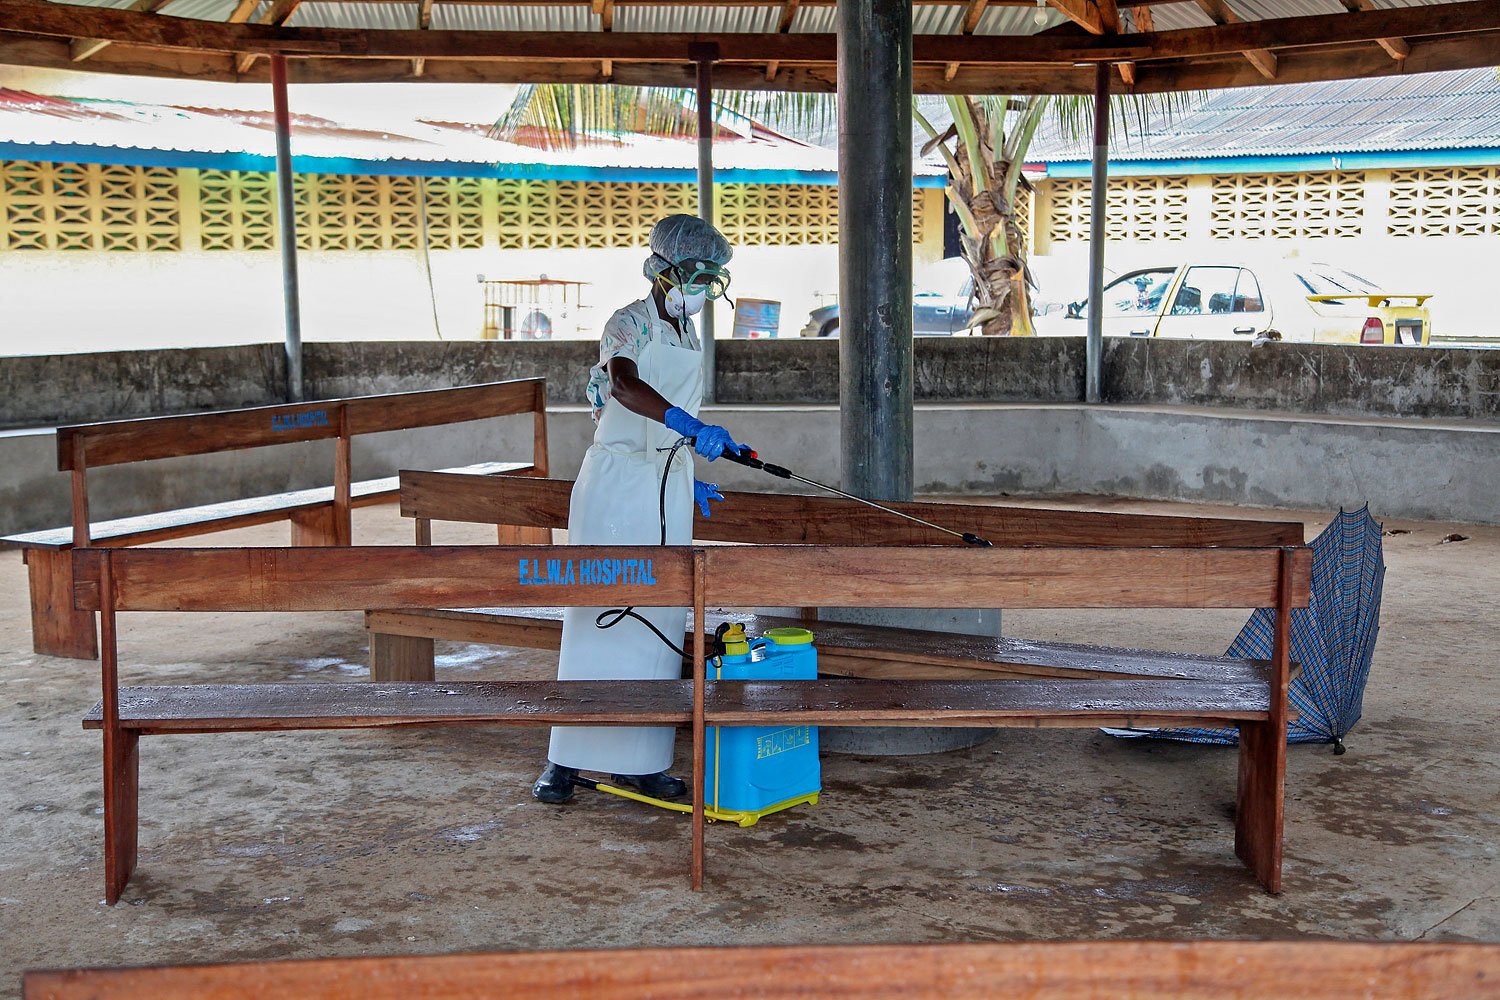 A nurse disinfects the waiting area for visitors at the ELWA Hospital in Monrovia, Liberia, on July 28, 2014